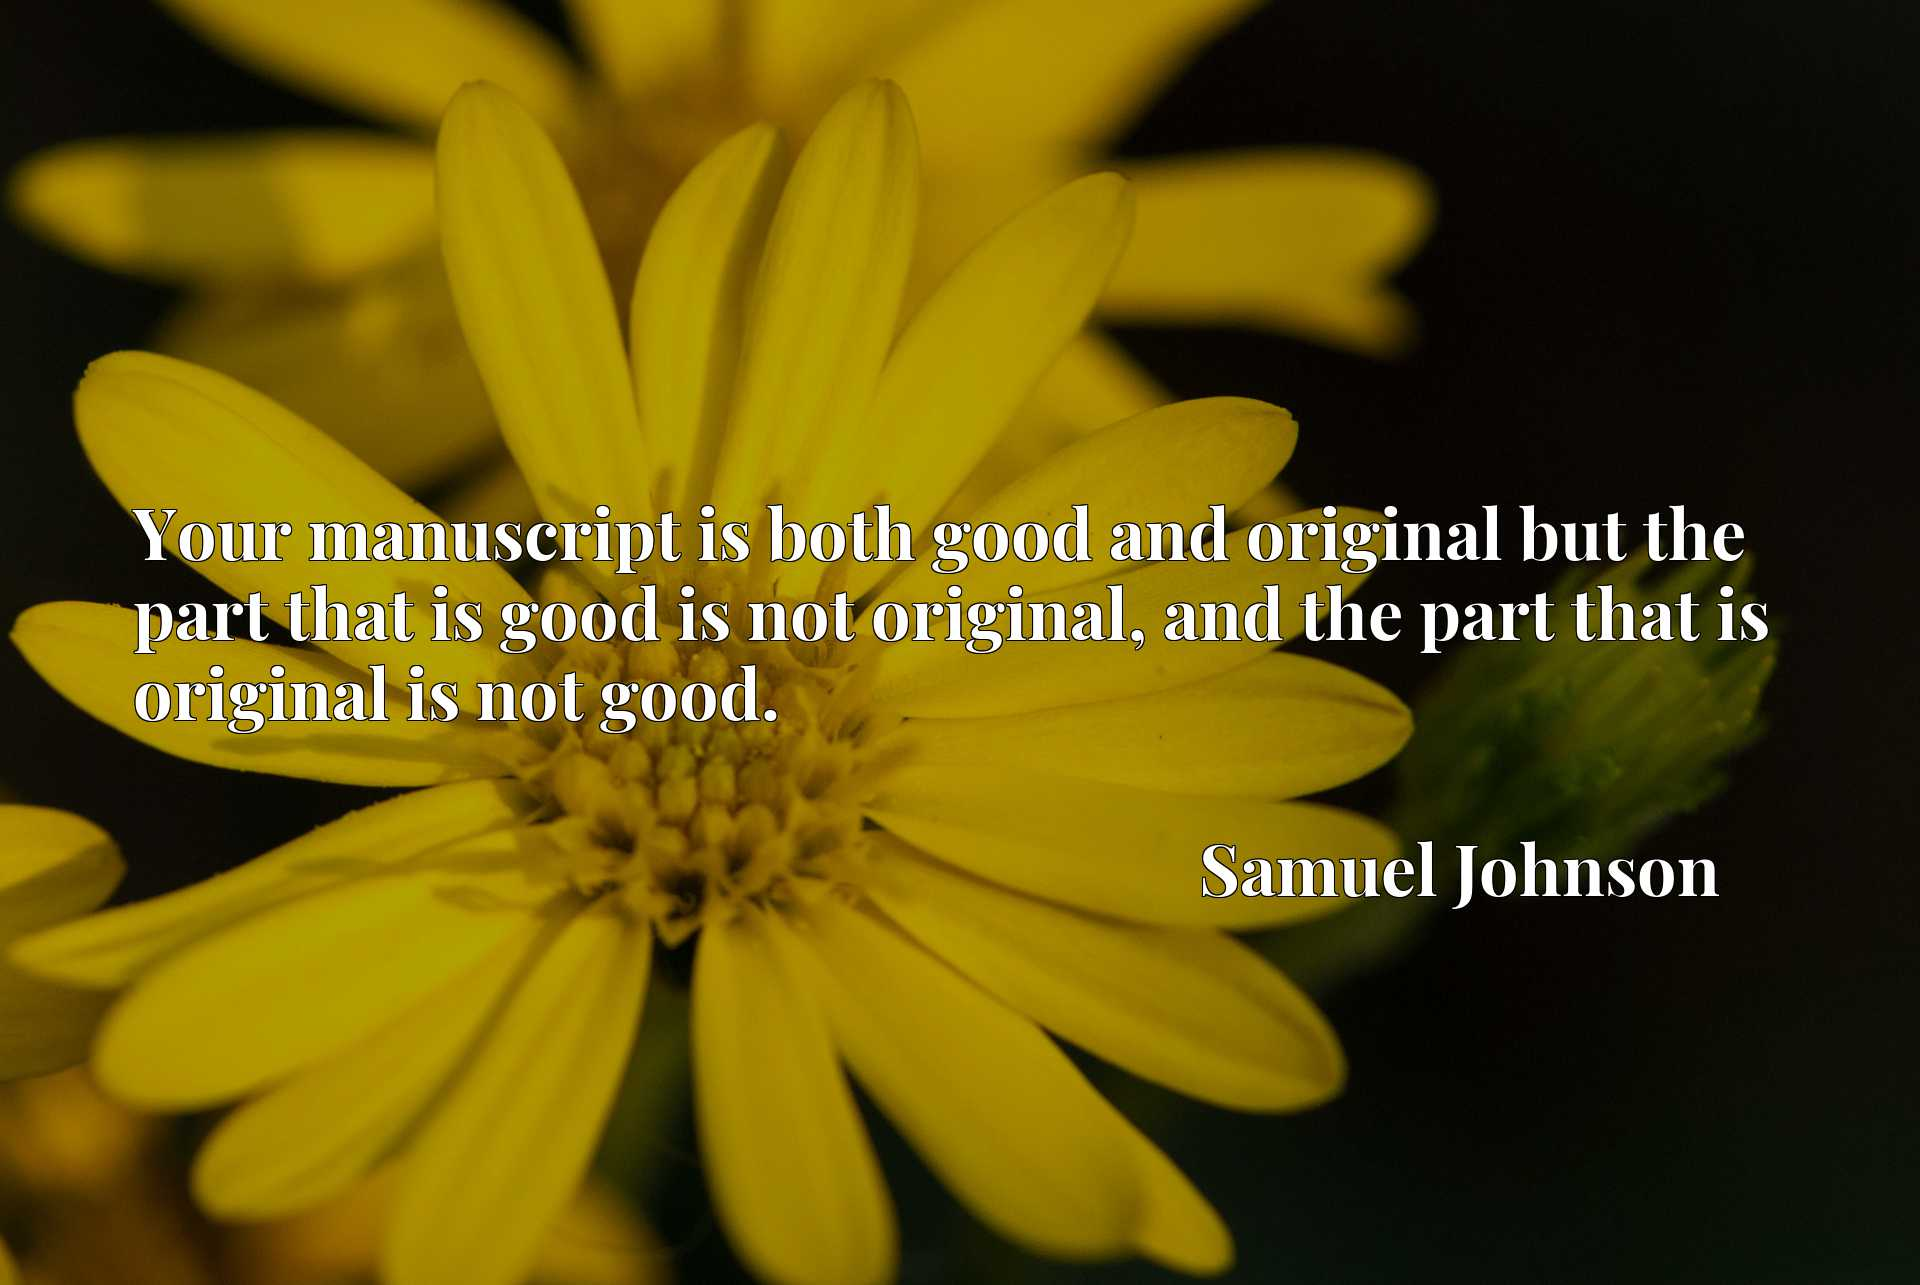 Your manuscript is both good and original but the part that is good is not original, and the part that is original is not good.